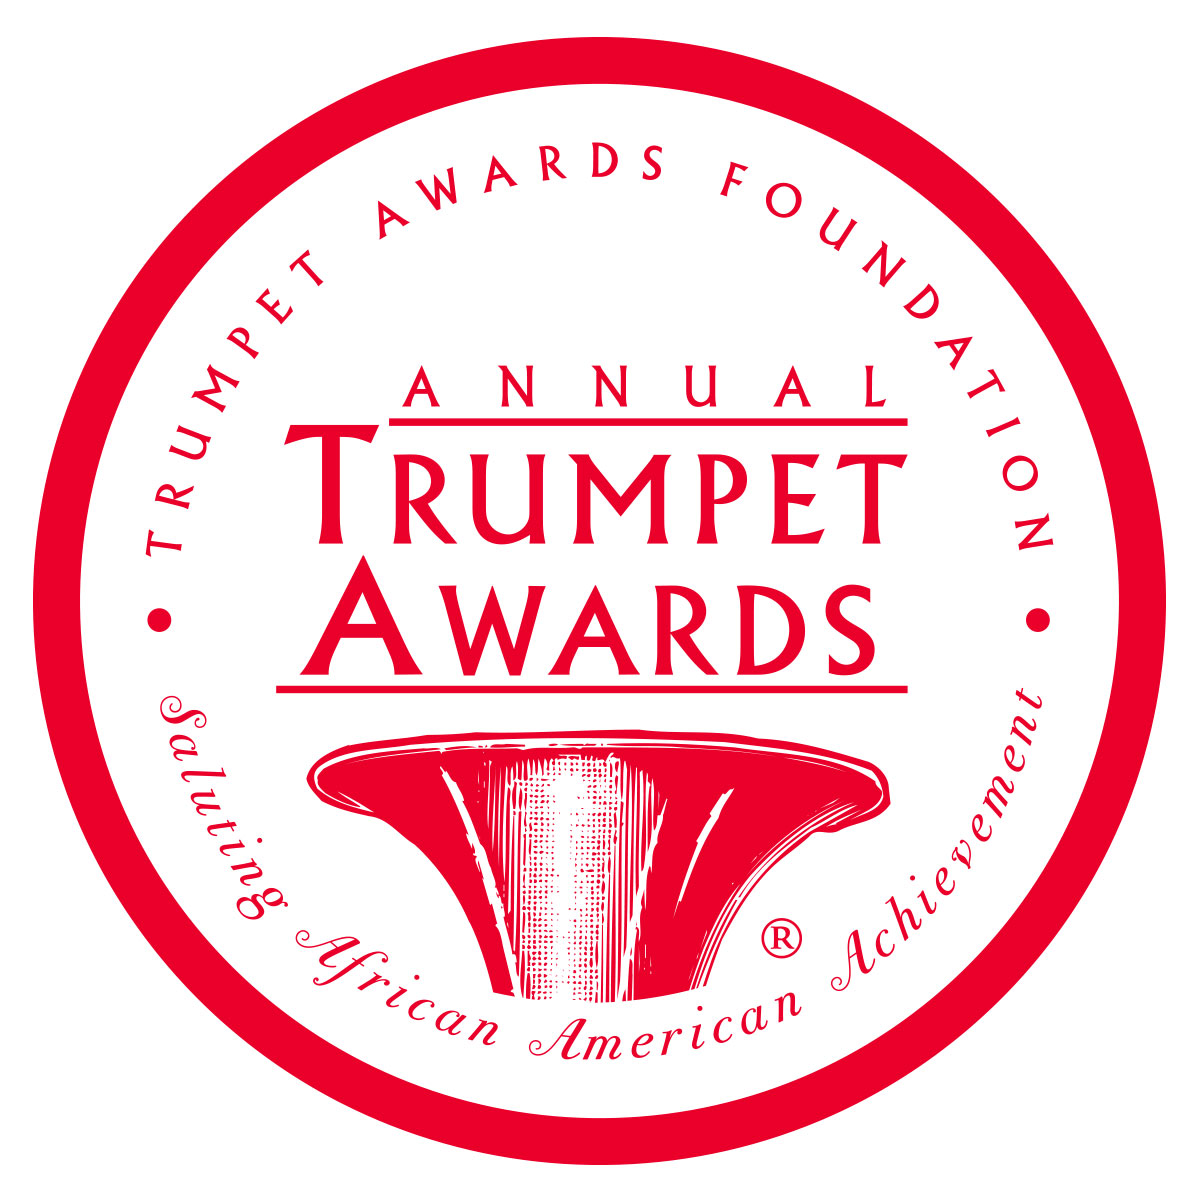 Trumpet Awards 2013 Honorees Announced: Rickey Smiley and Essence Atkins Will Co-Host Star Studded Ceremony   Virtual-Strategy Magazine